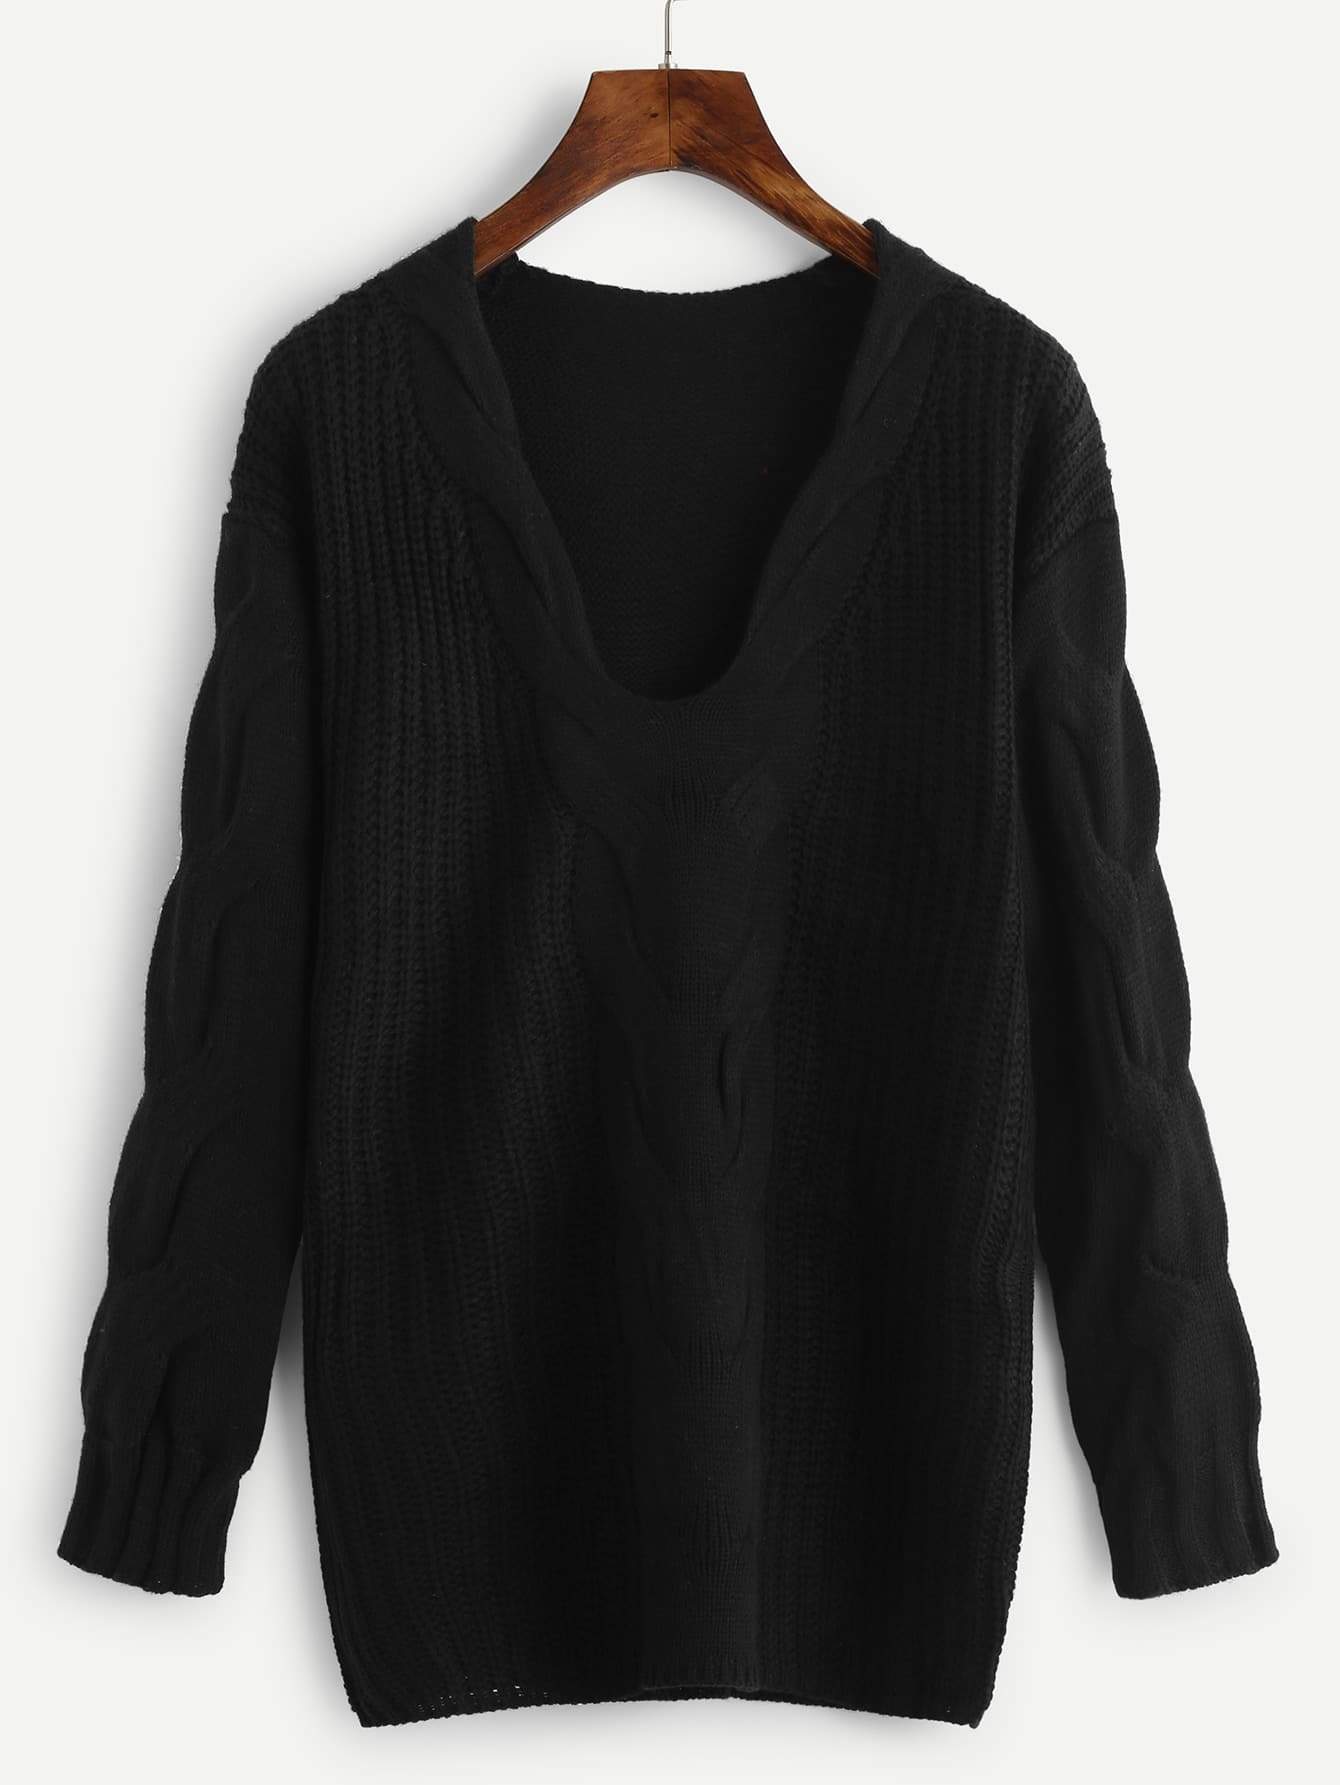 Plunge Drop Shoulder Cable Knit Sweater cable knit a line sweater dress